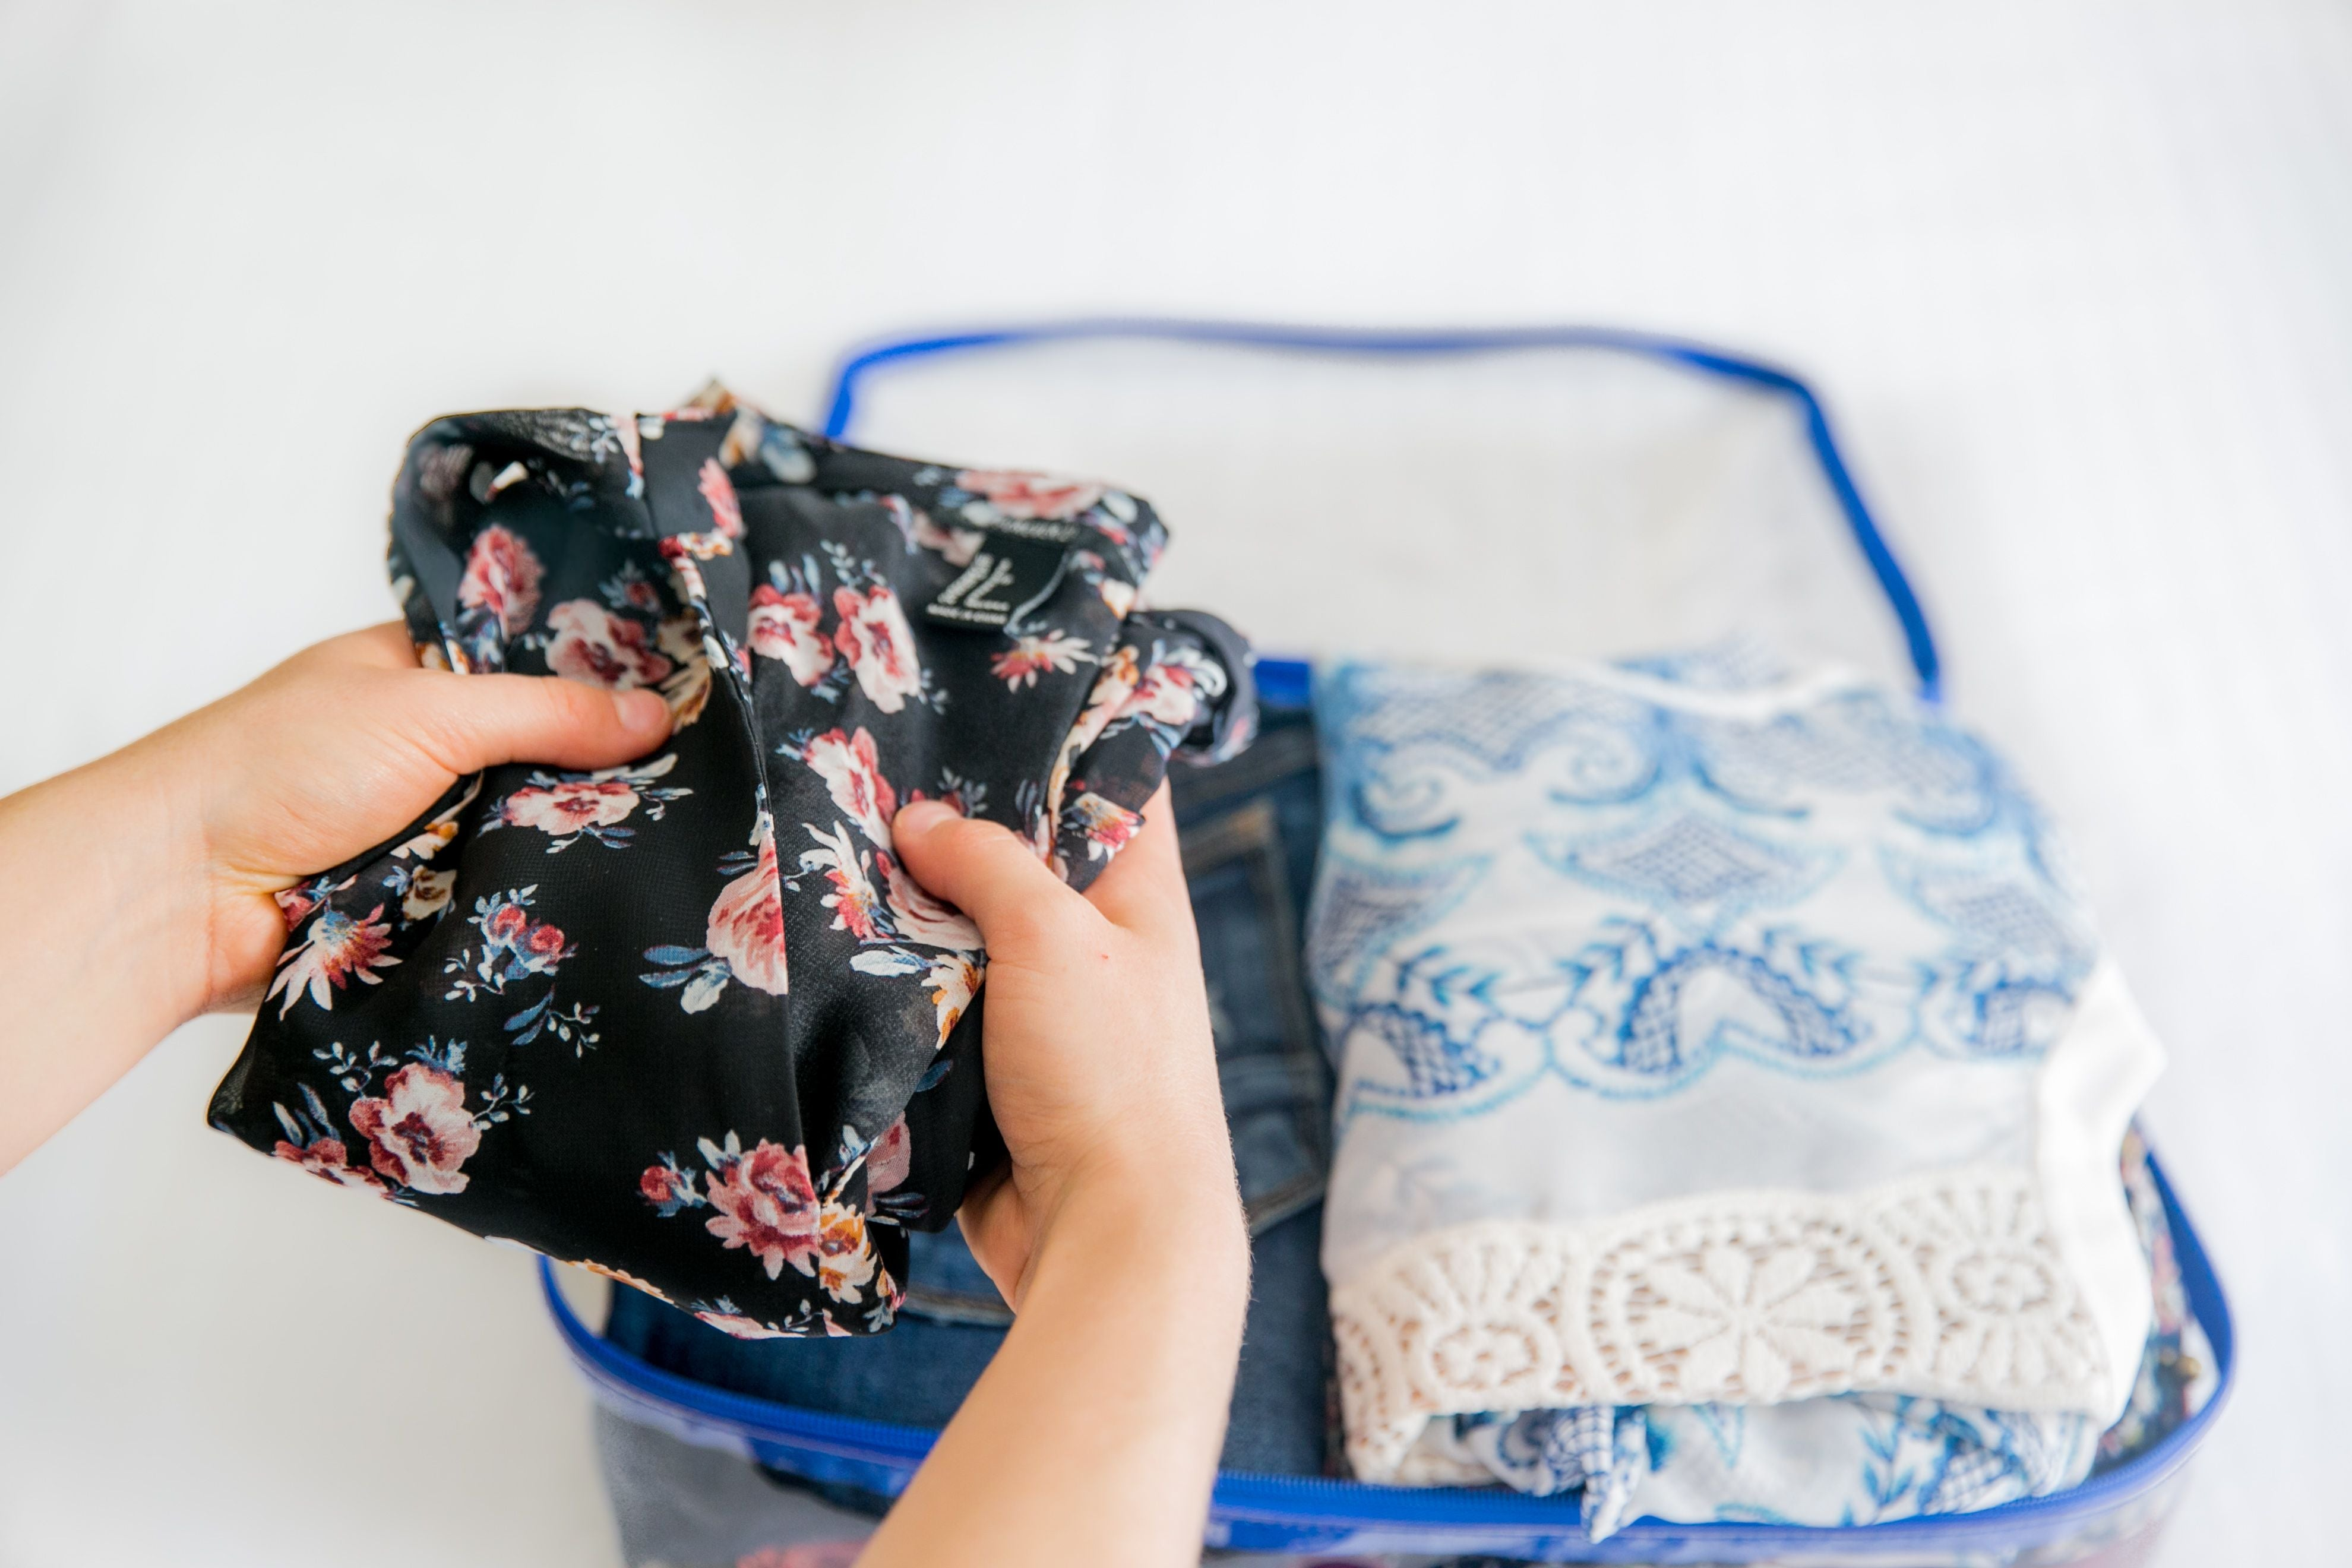 Packing women's clothes in a turquoise medium cube